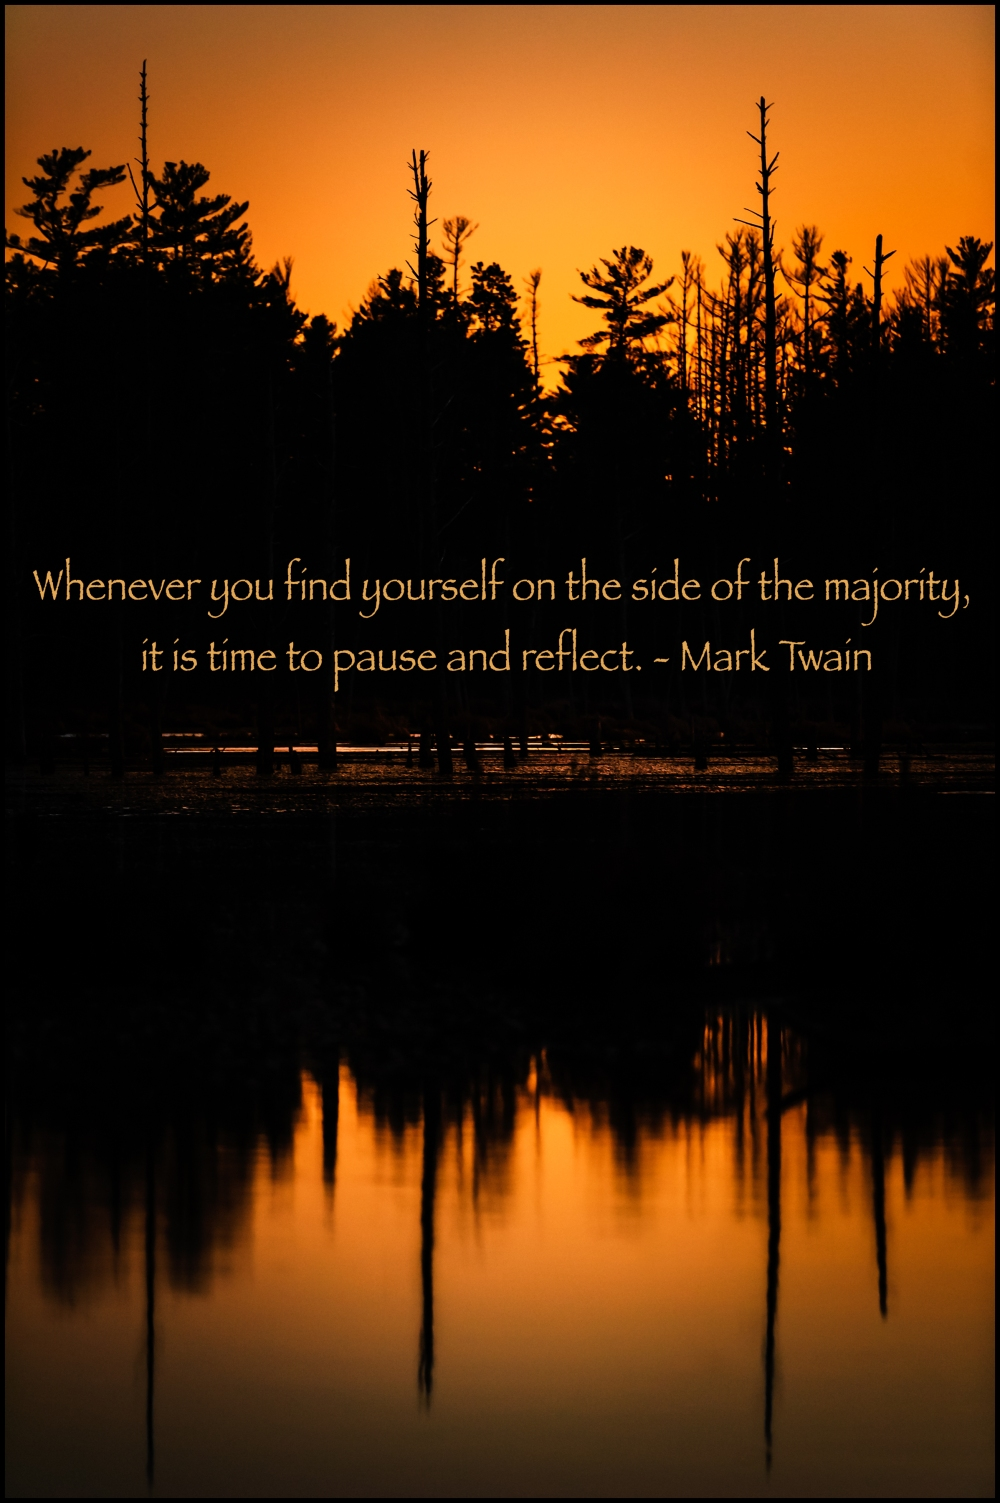 Quote Of The Day Whenever you find yourself on the side of the majority, it is time to pause and reflect. - Mark Twain